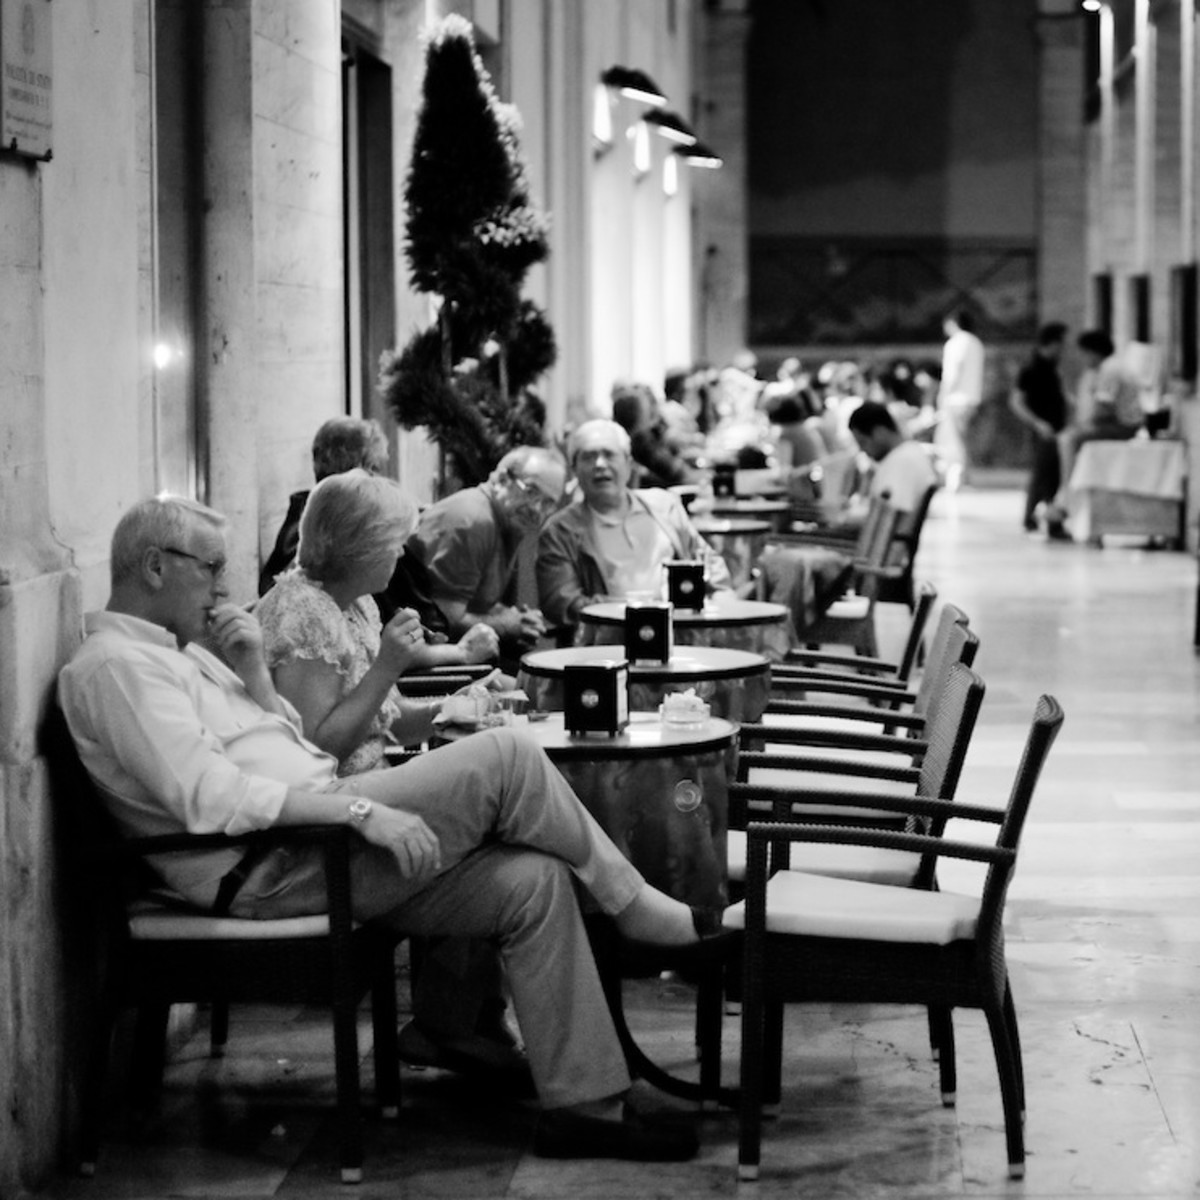 Urbino is a wonderful place to sit and enjoy an evening with friends at one of the many local cafes.